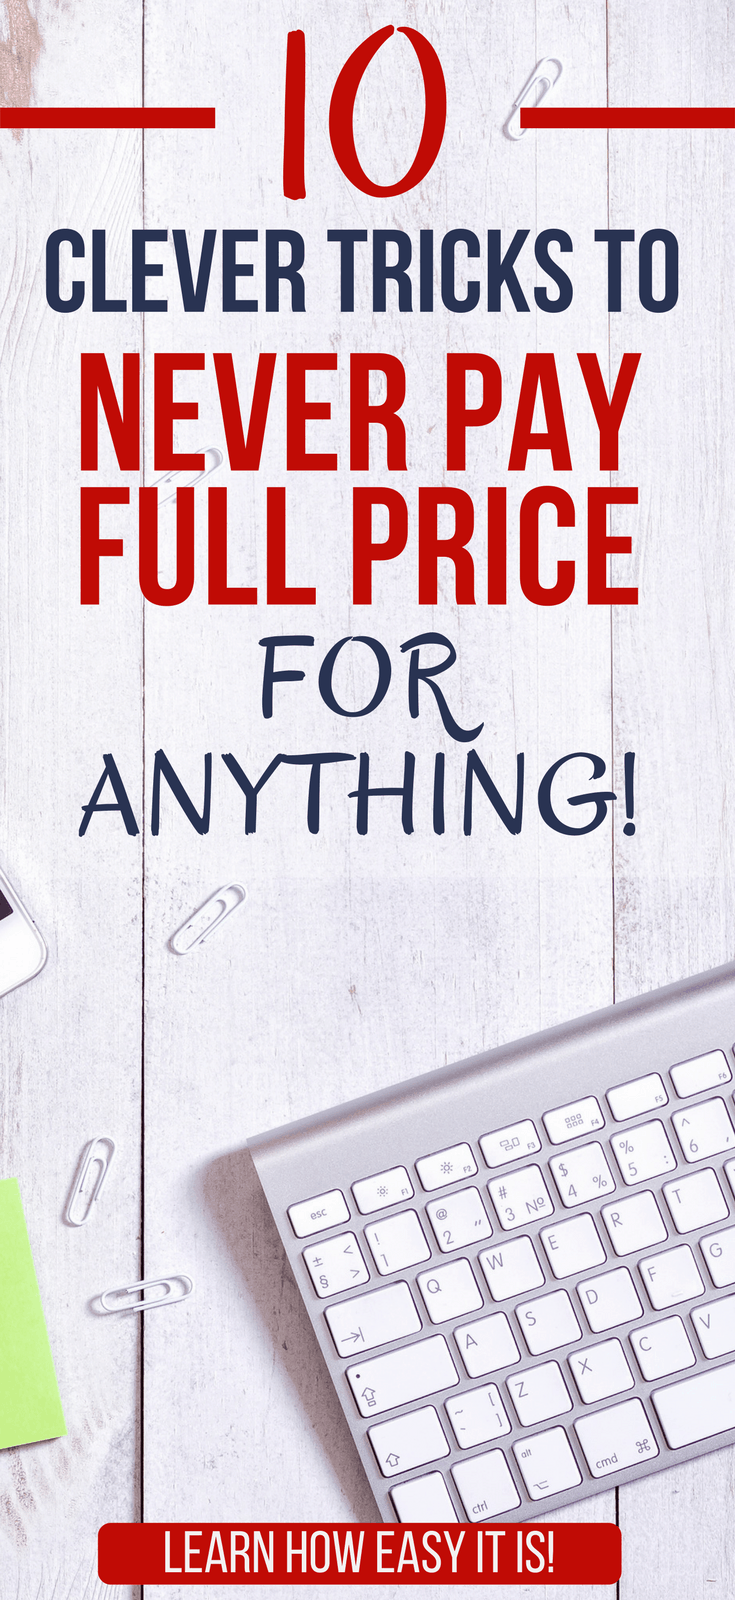 10 Clever Tricks to Never Pay Full Price for AnythingDiscover 10 clever tricks, tips, and hacks for saving money on each and every purchase.money saving hacks lifehacks | tips for saving money frugal living | ways to save money on bills |#thewaystowealth #hacks #money #savemoney #savingmoney